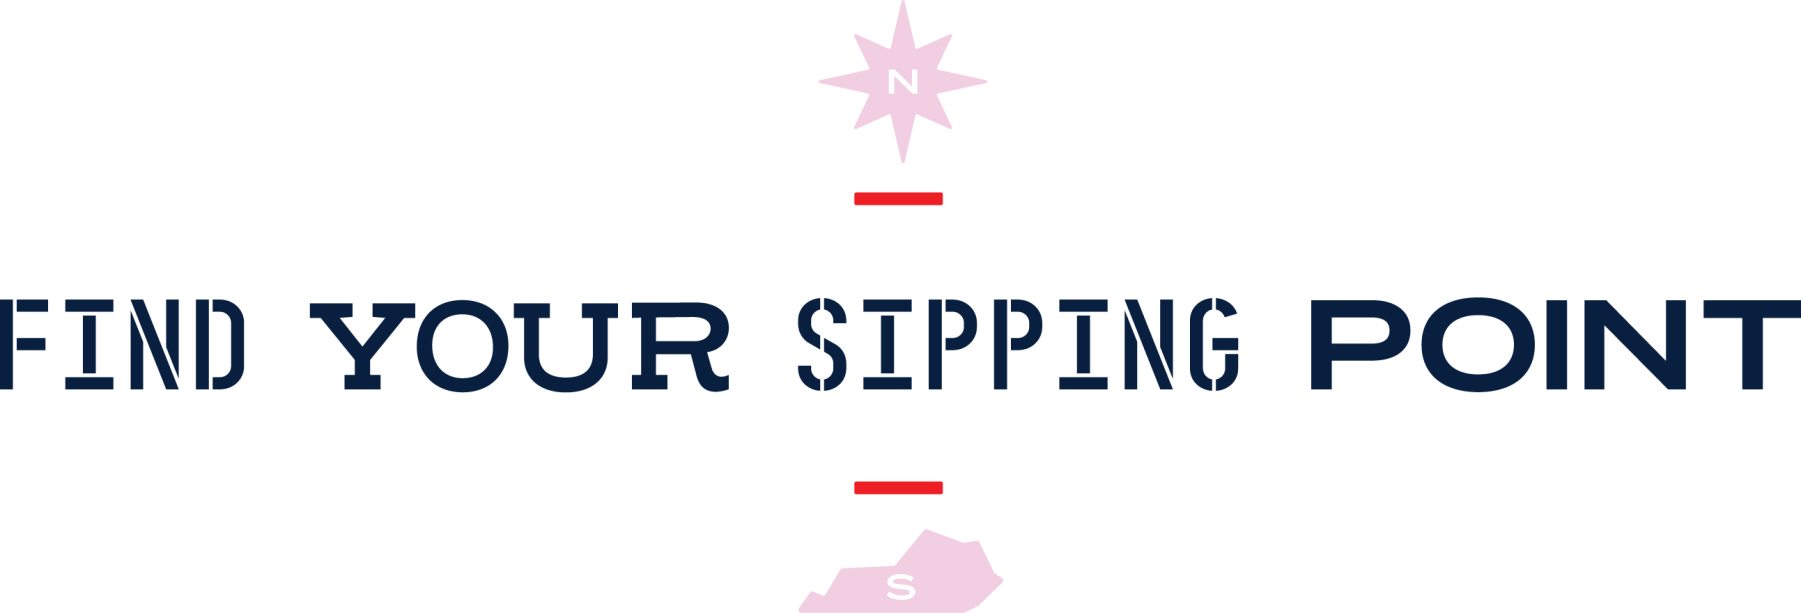 find your sipping point